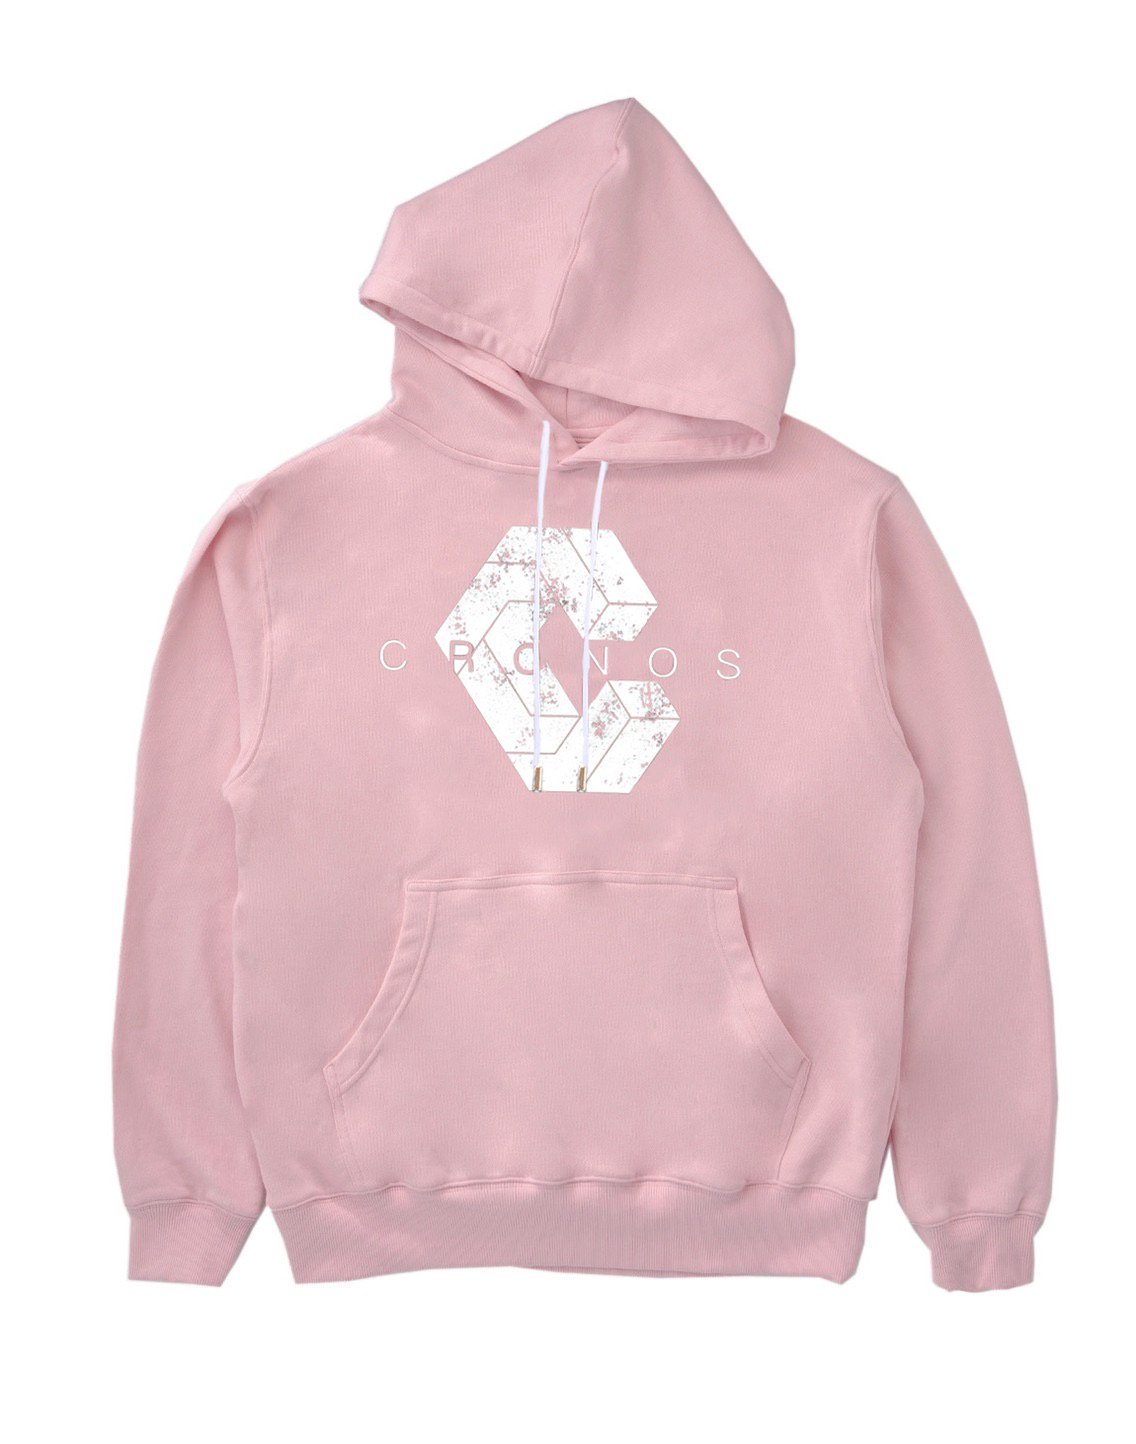 <img class='new_mark_img1' src='https://img.shop-pro.jp/img/new/icons1.gif' style='border:none;display:inline;margin:0px;padding:0px;width:auto;' />CRONOS BIG LOGO HOODY【PINK】